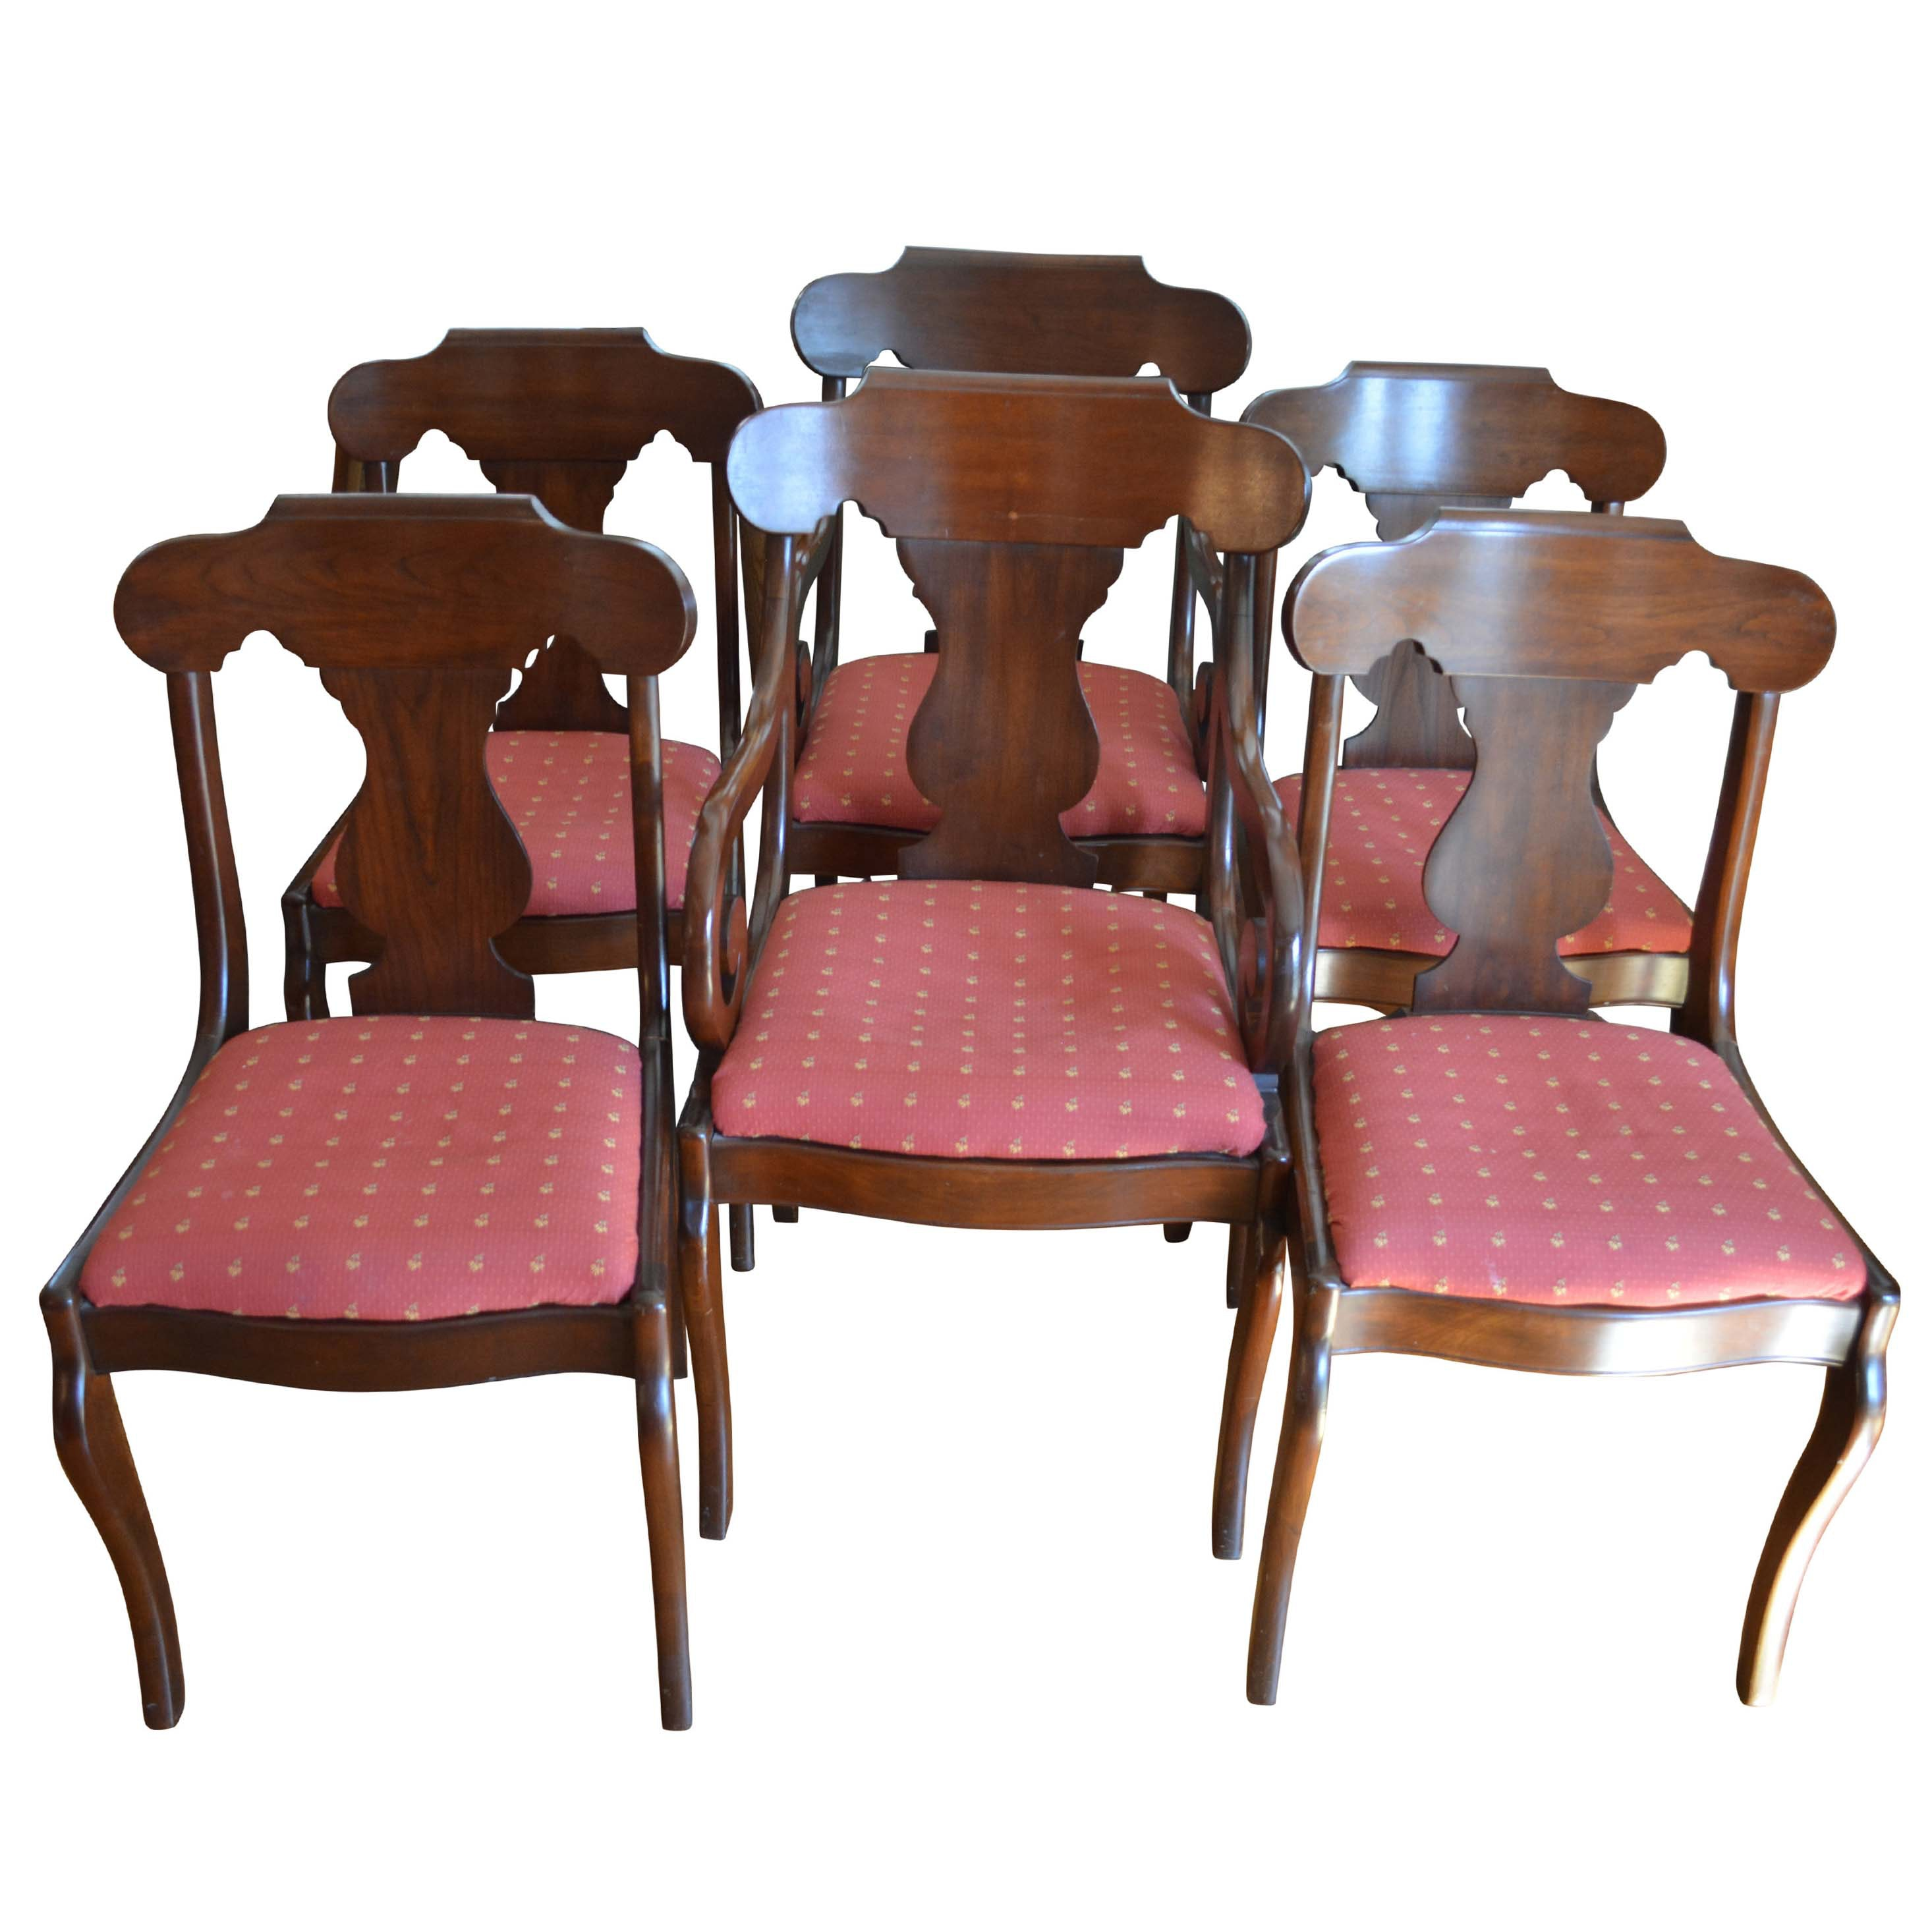 Vintage Pennsylvania House Regency Style Dining Chairs